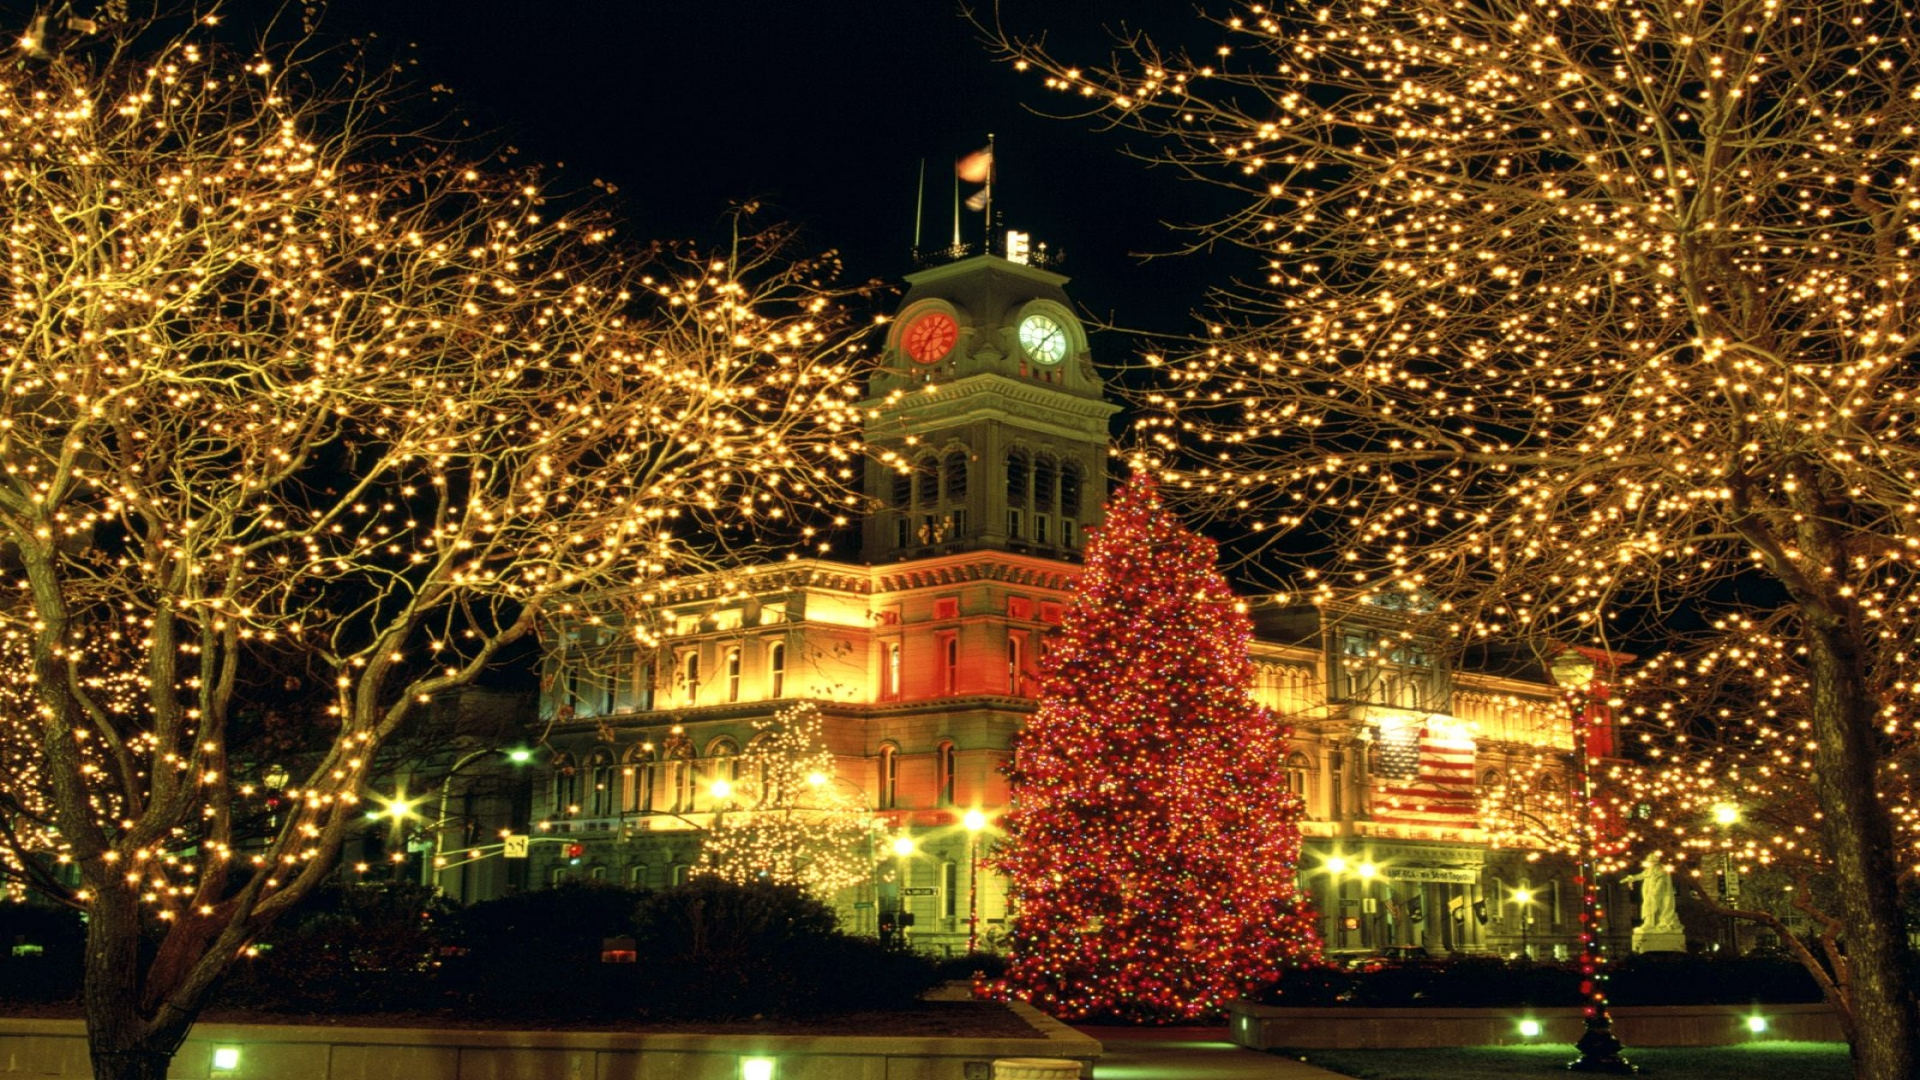 Christmas Lights in City Square HD Wallpaper | Background